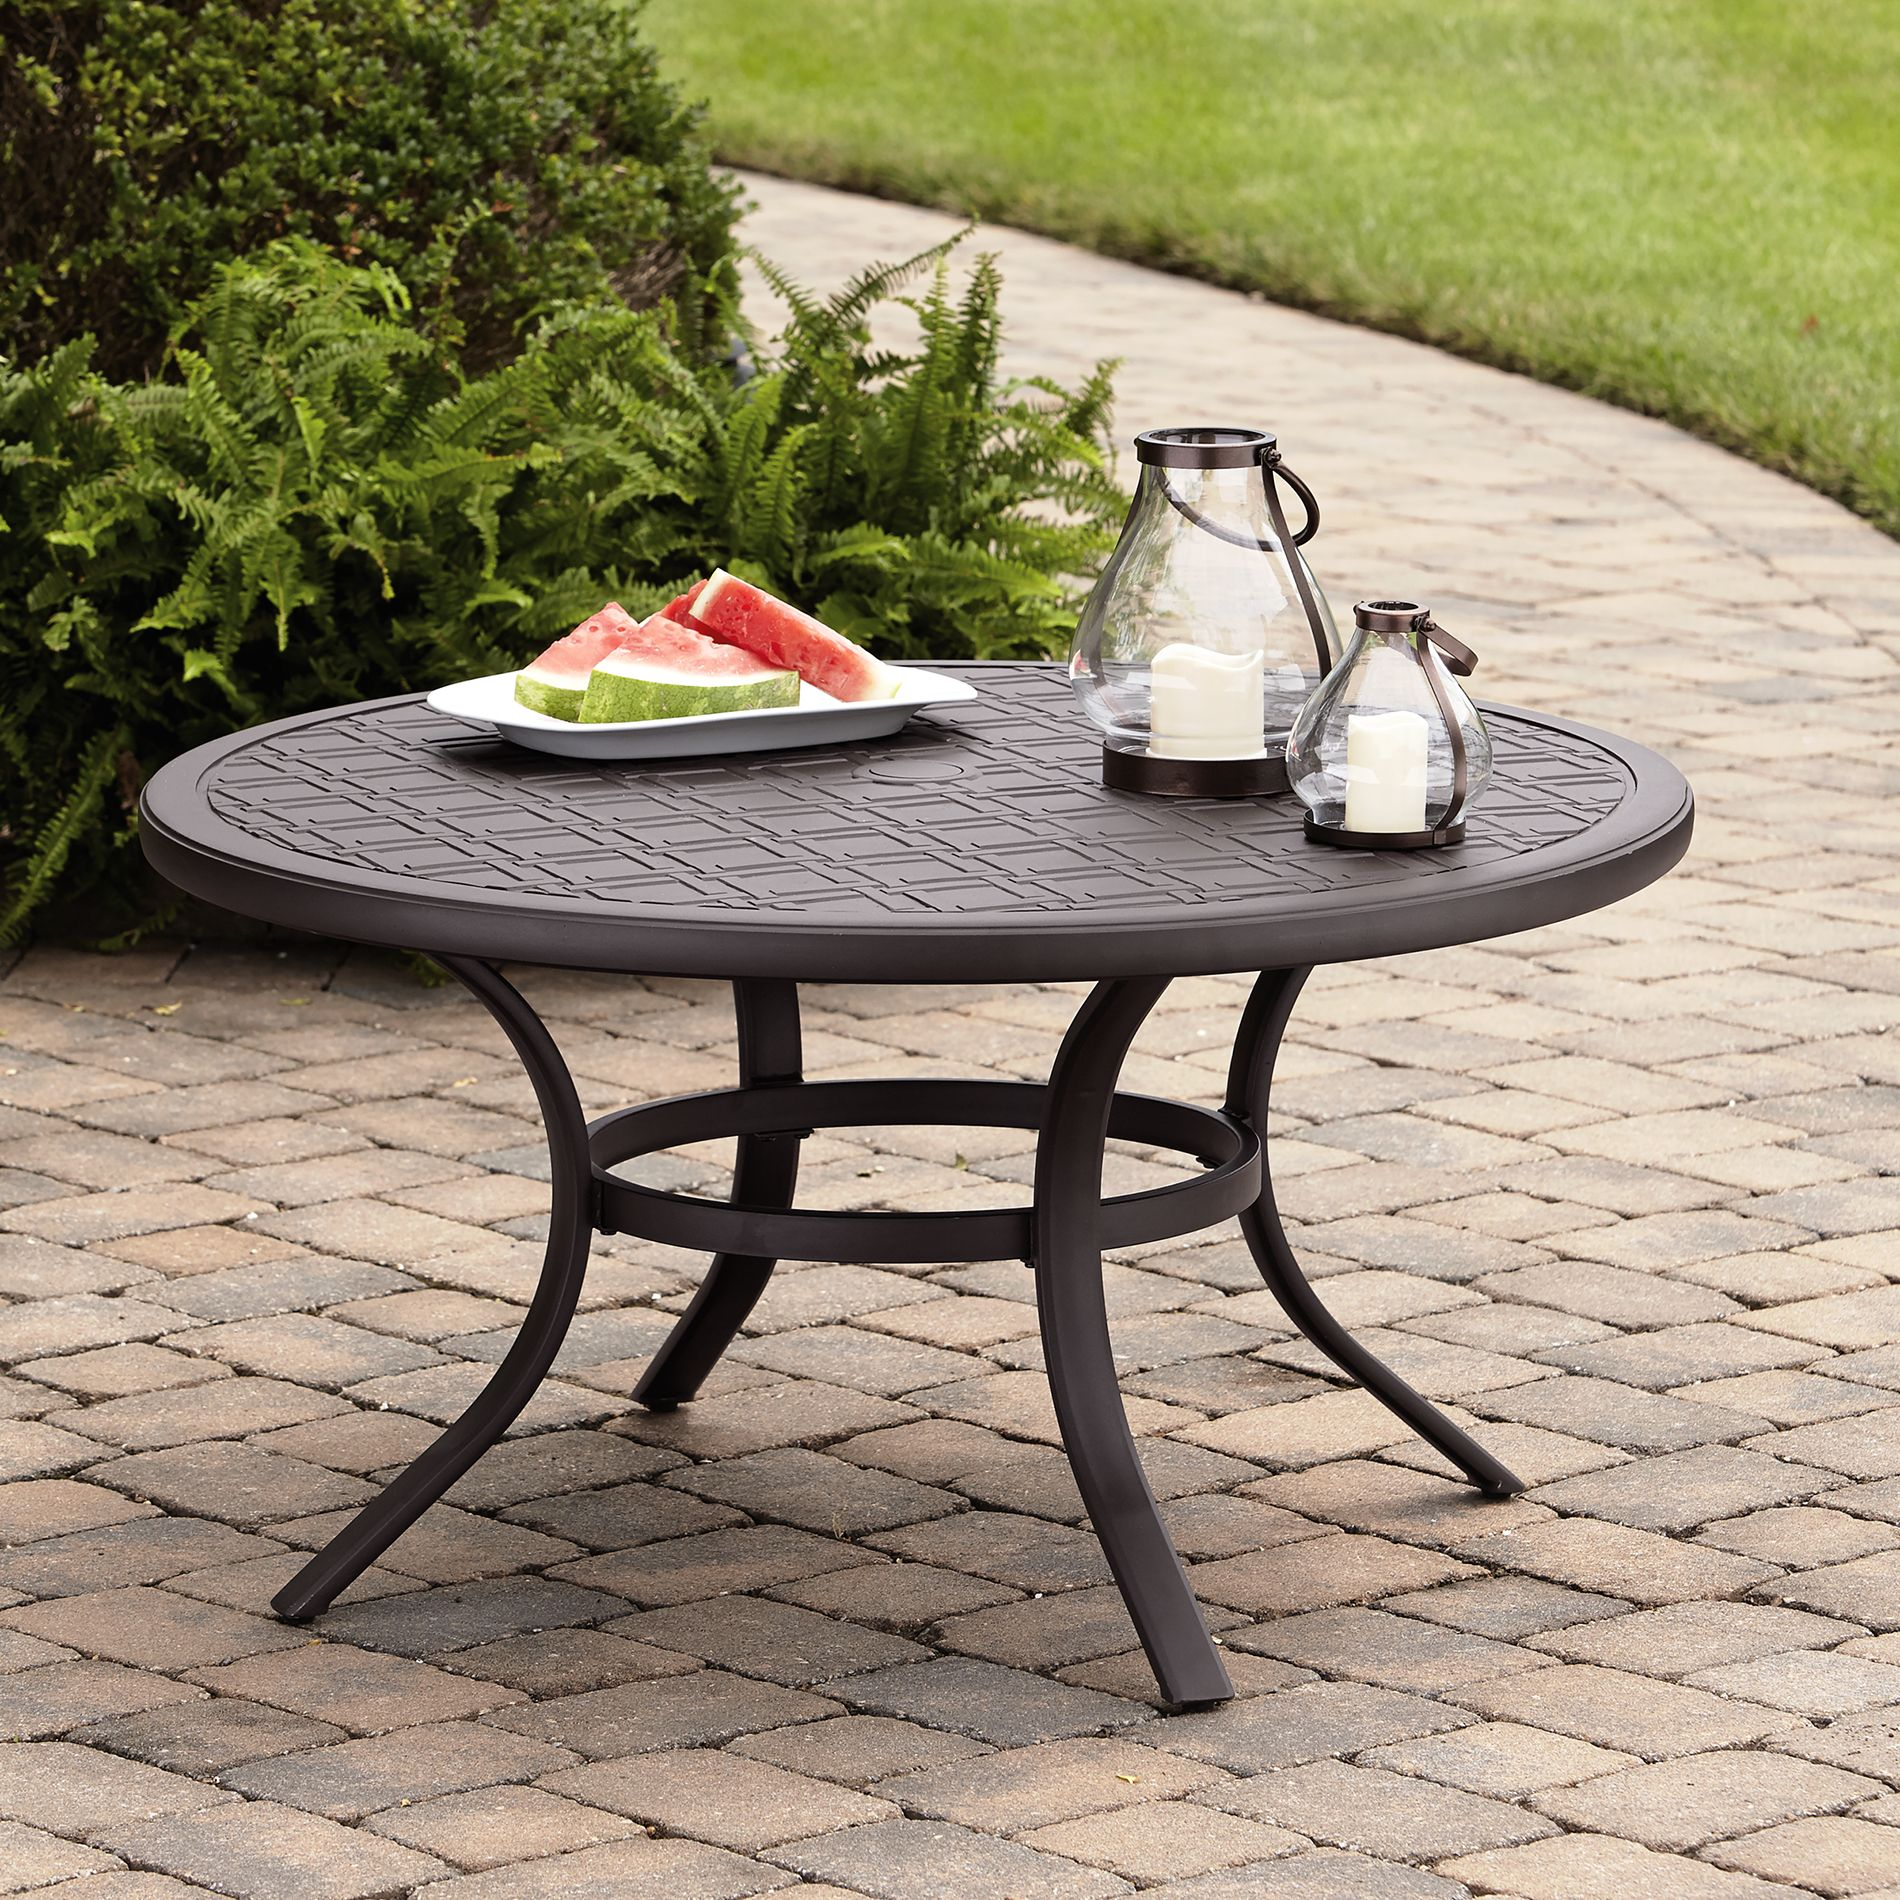 Awesome Perfect Patio Furniture Kmart 43 Home Design